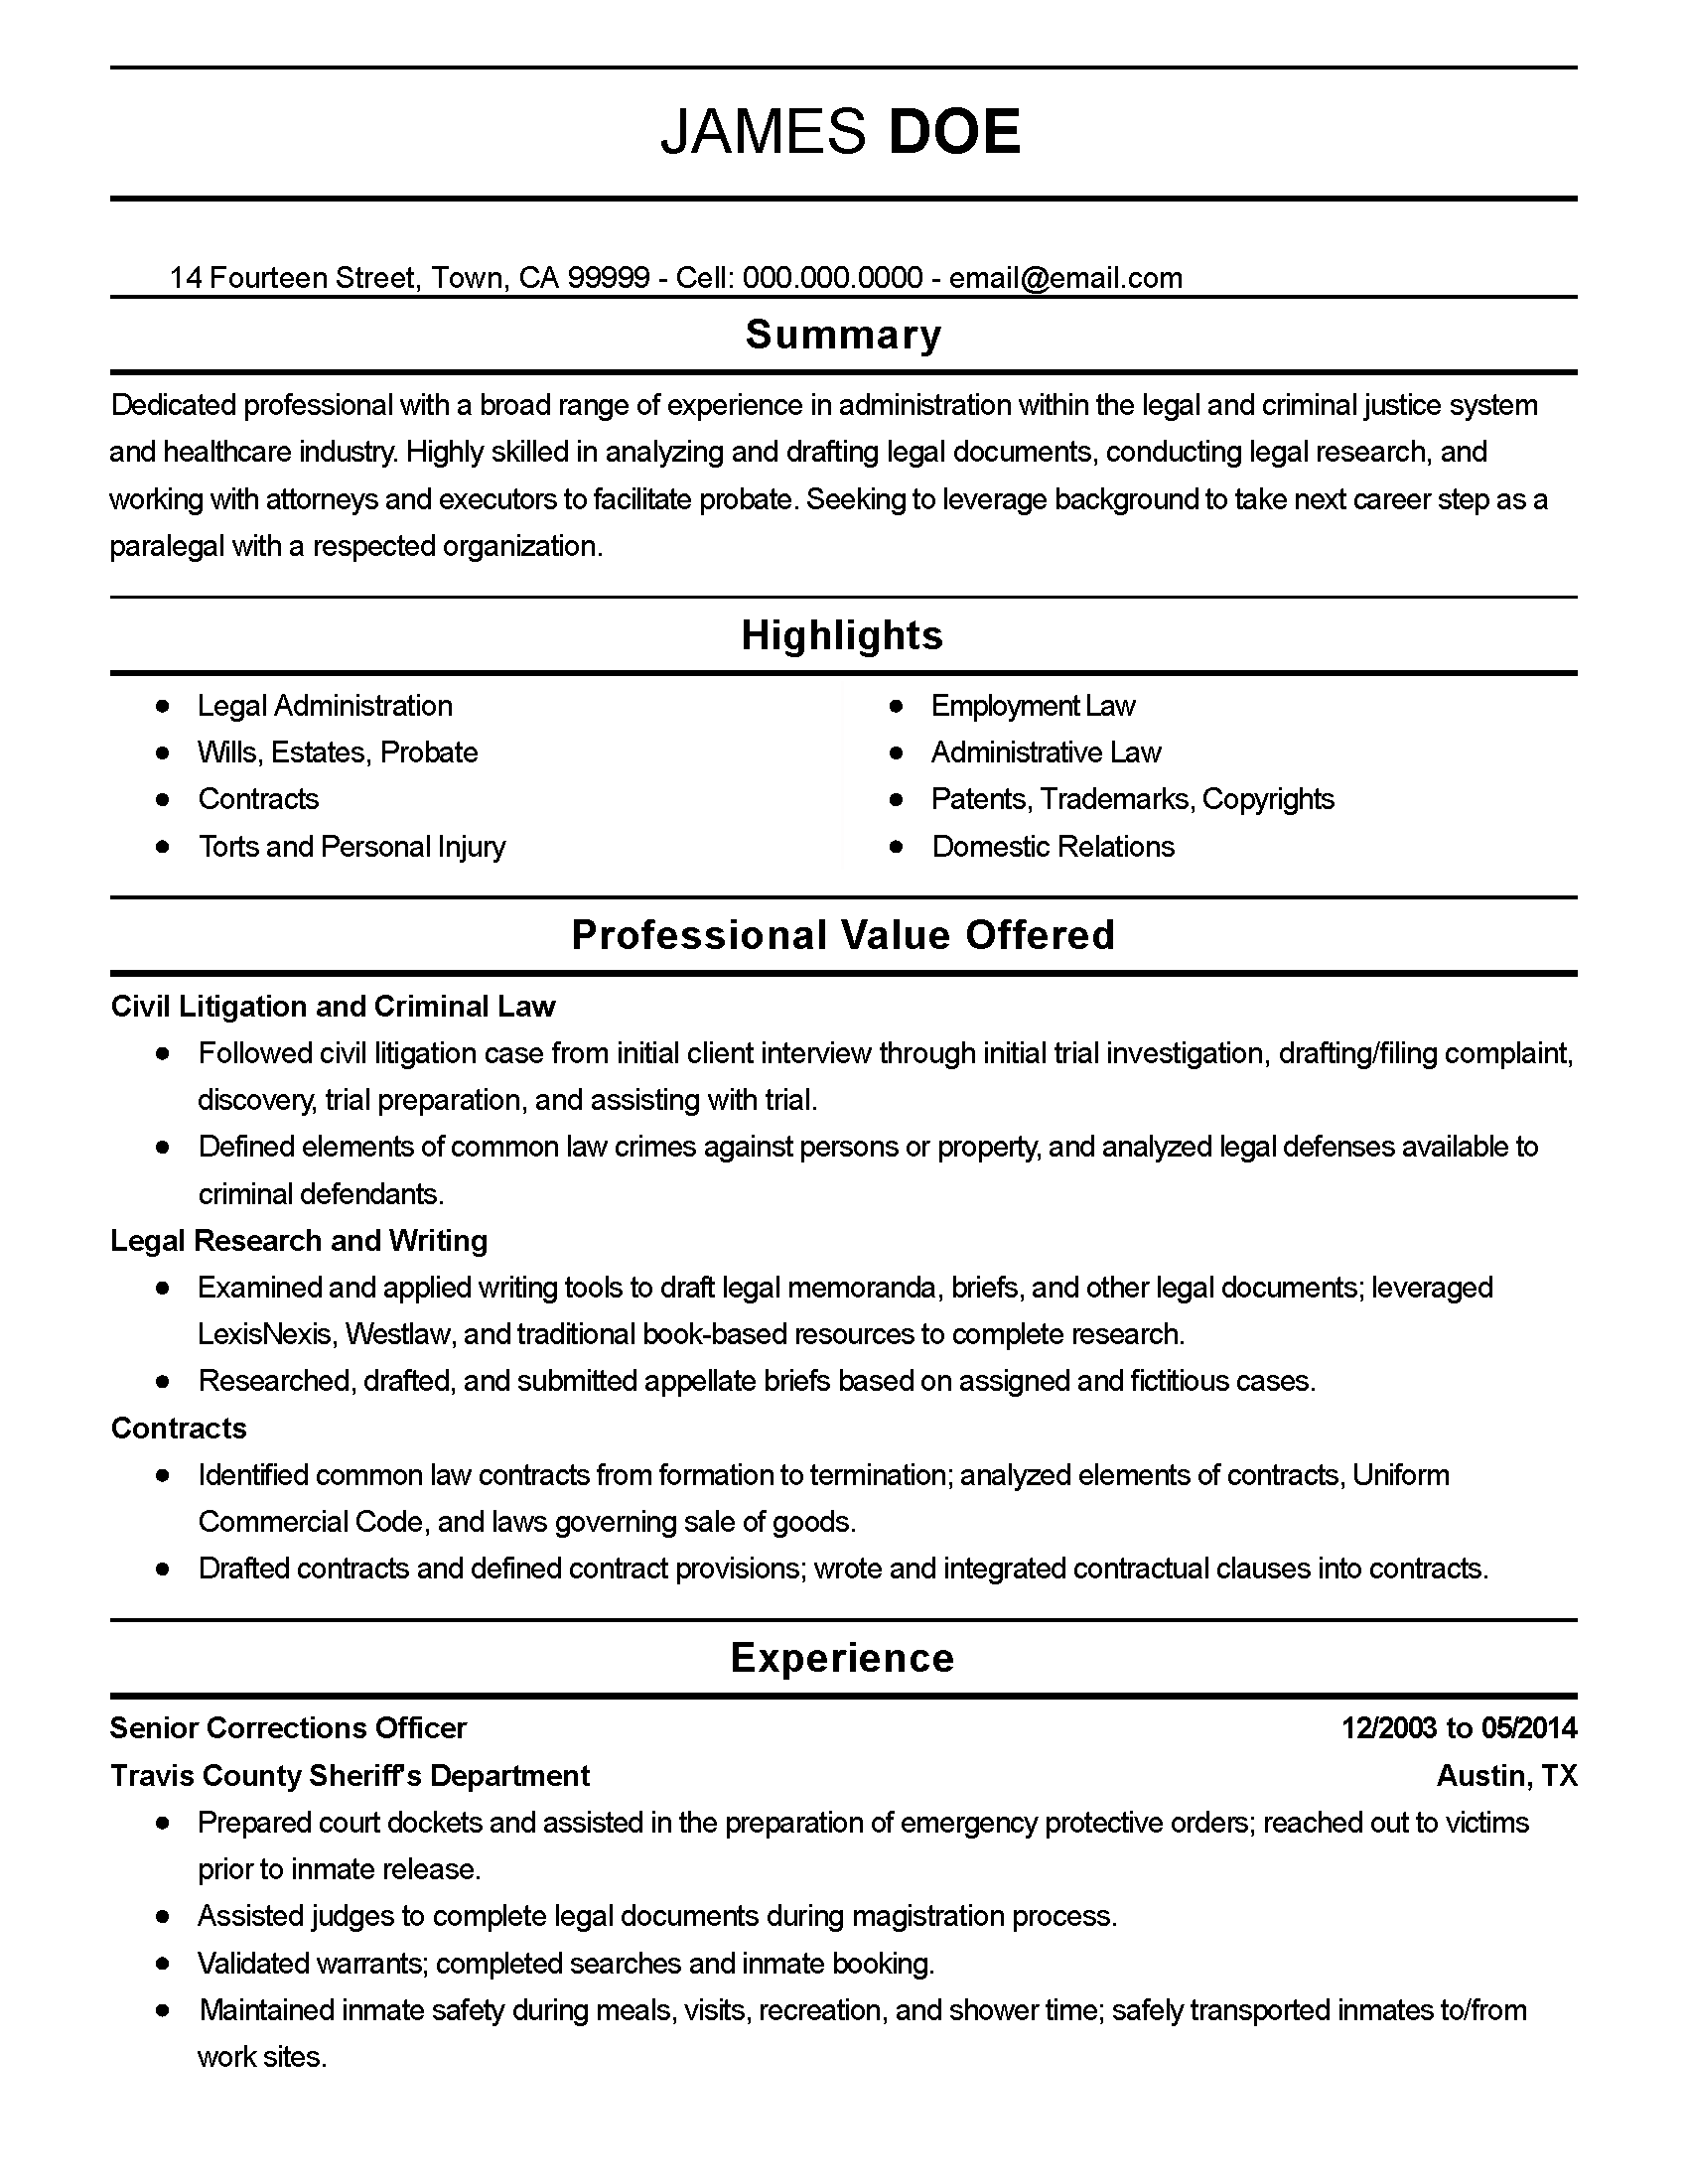 Professional Senior Corrections Officer Templates Showcase Your